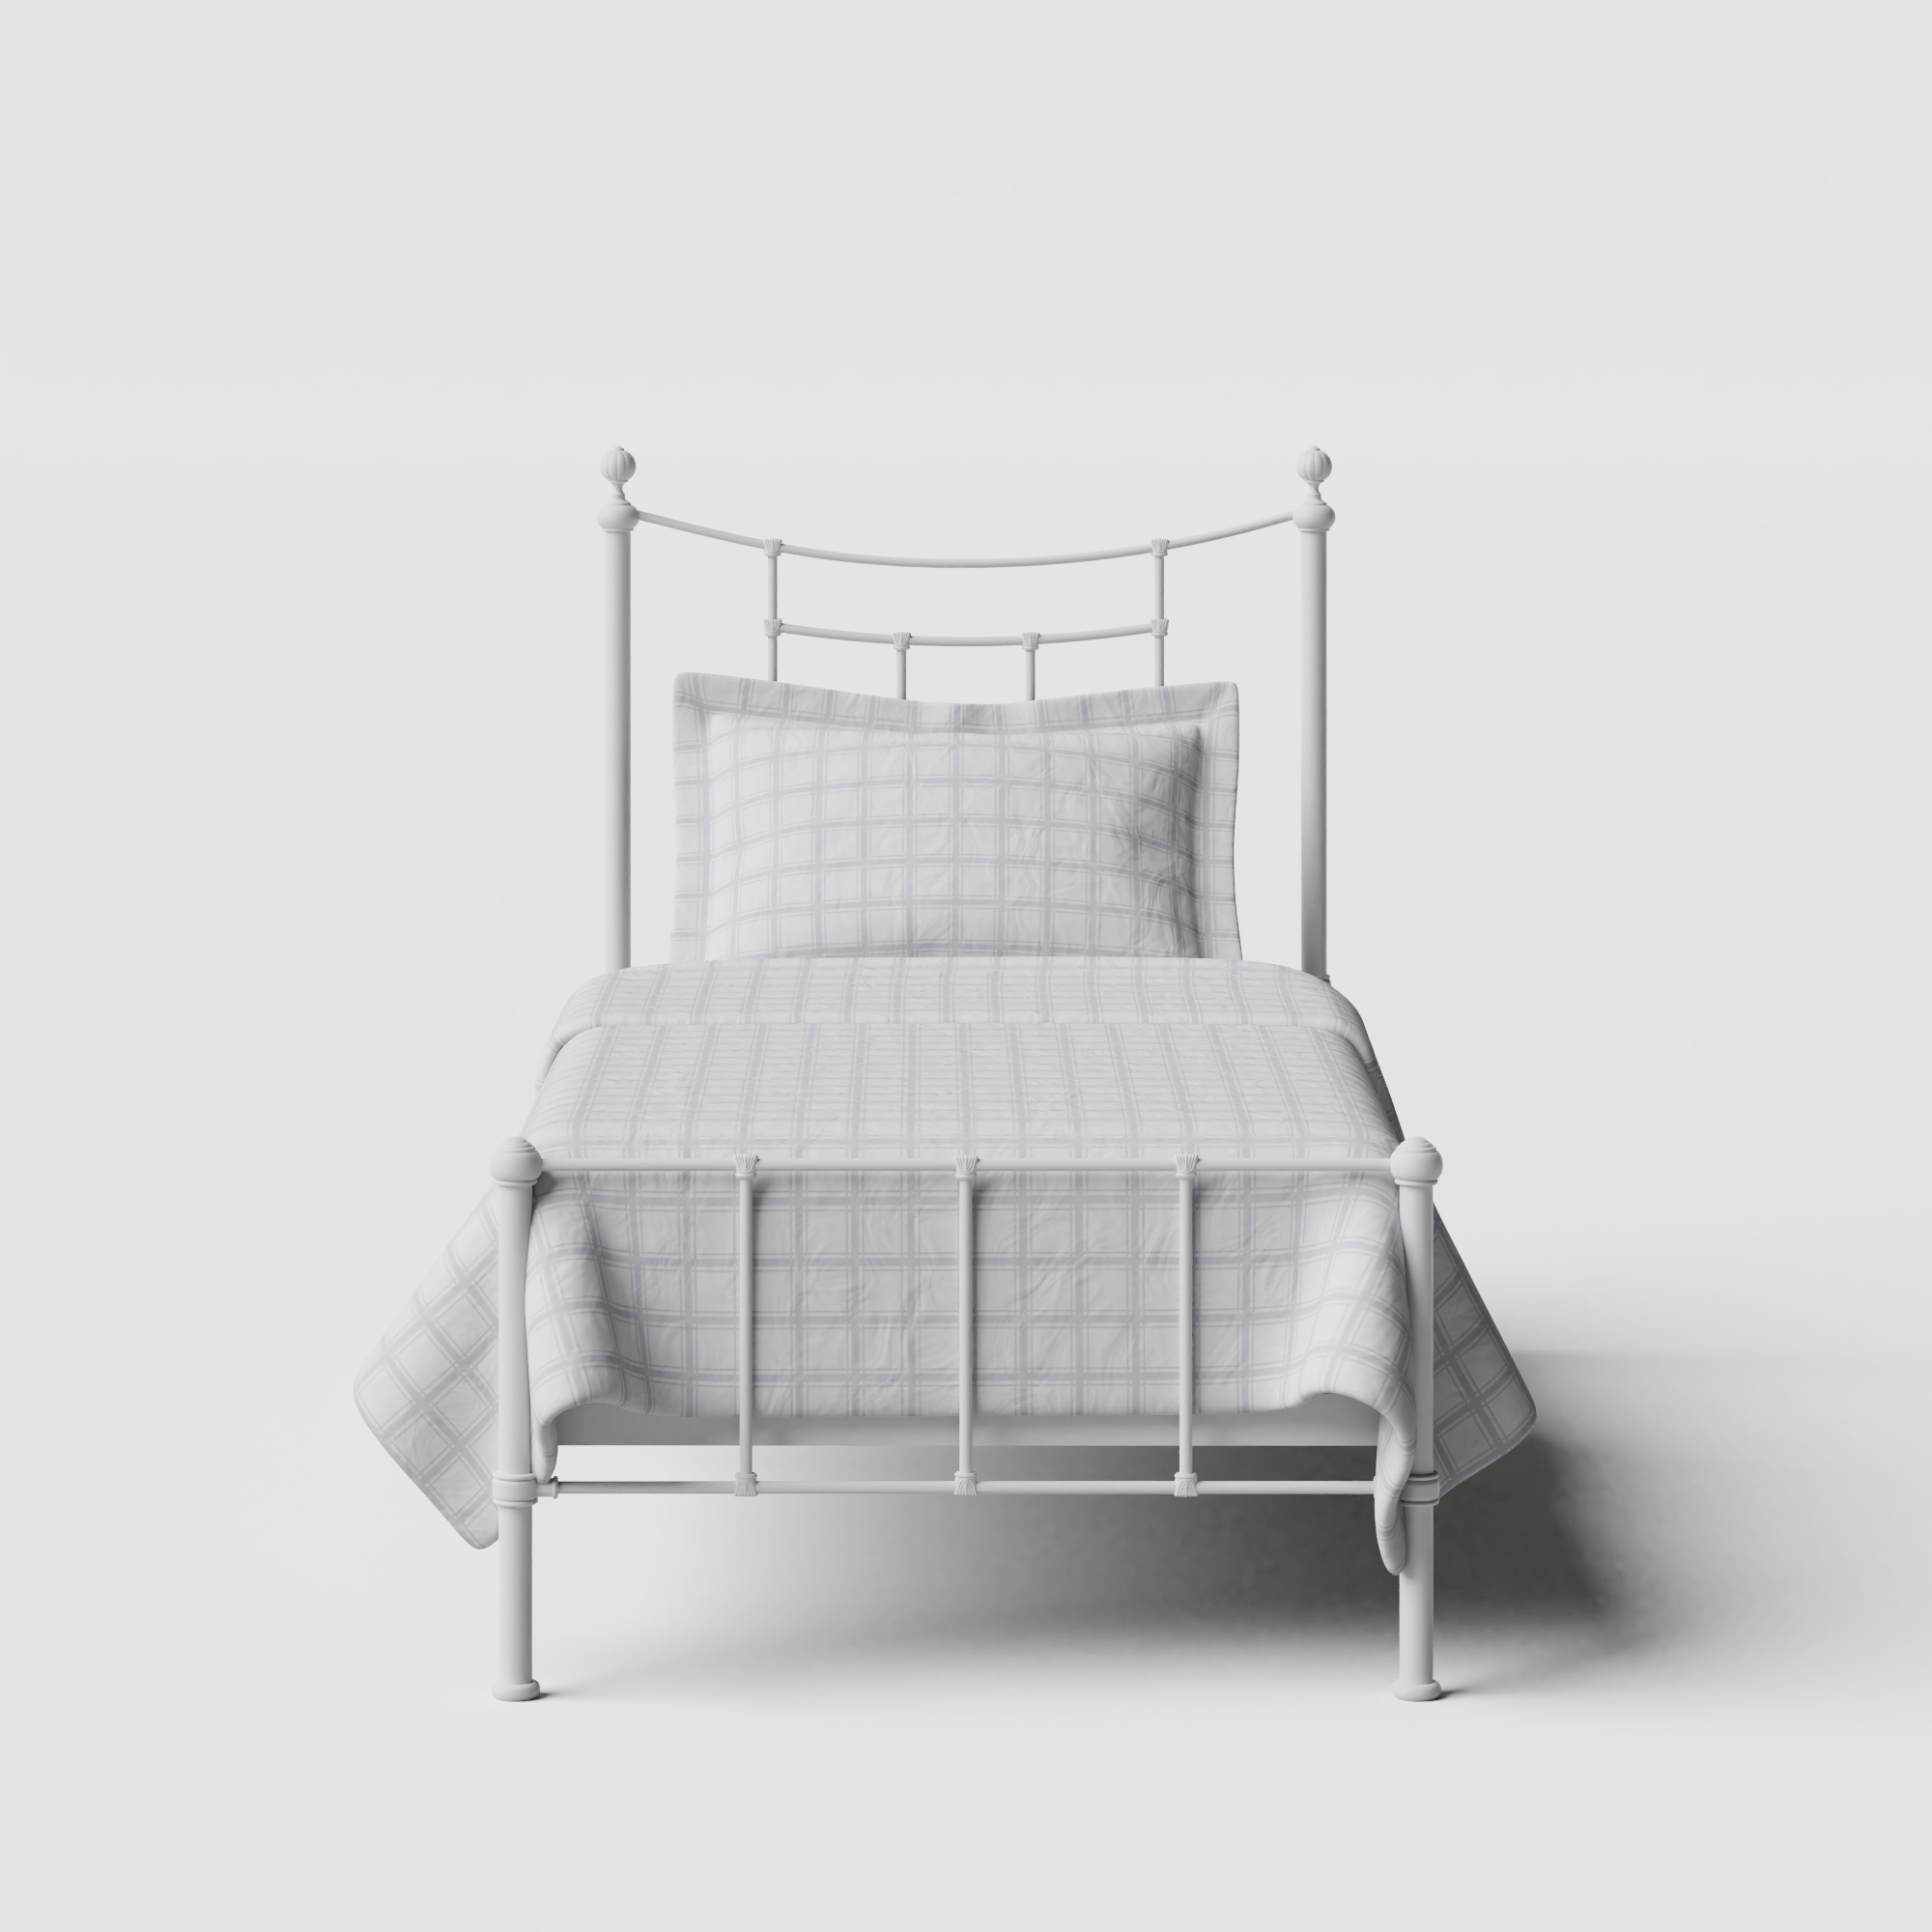 Isabelle iron/metal single bed in white